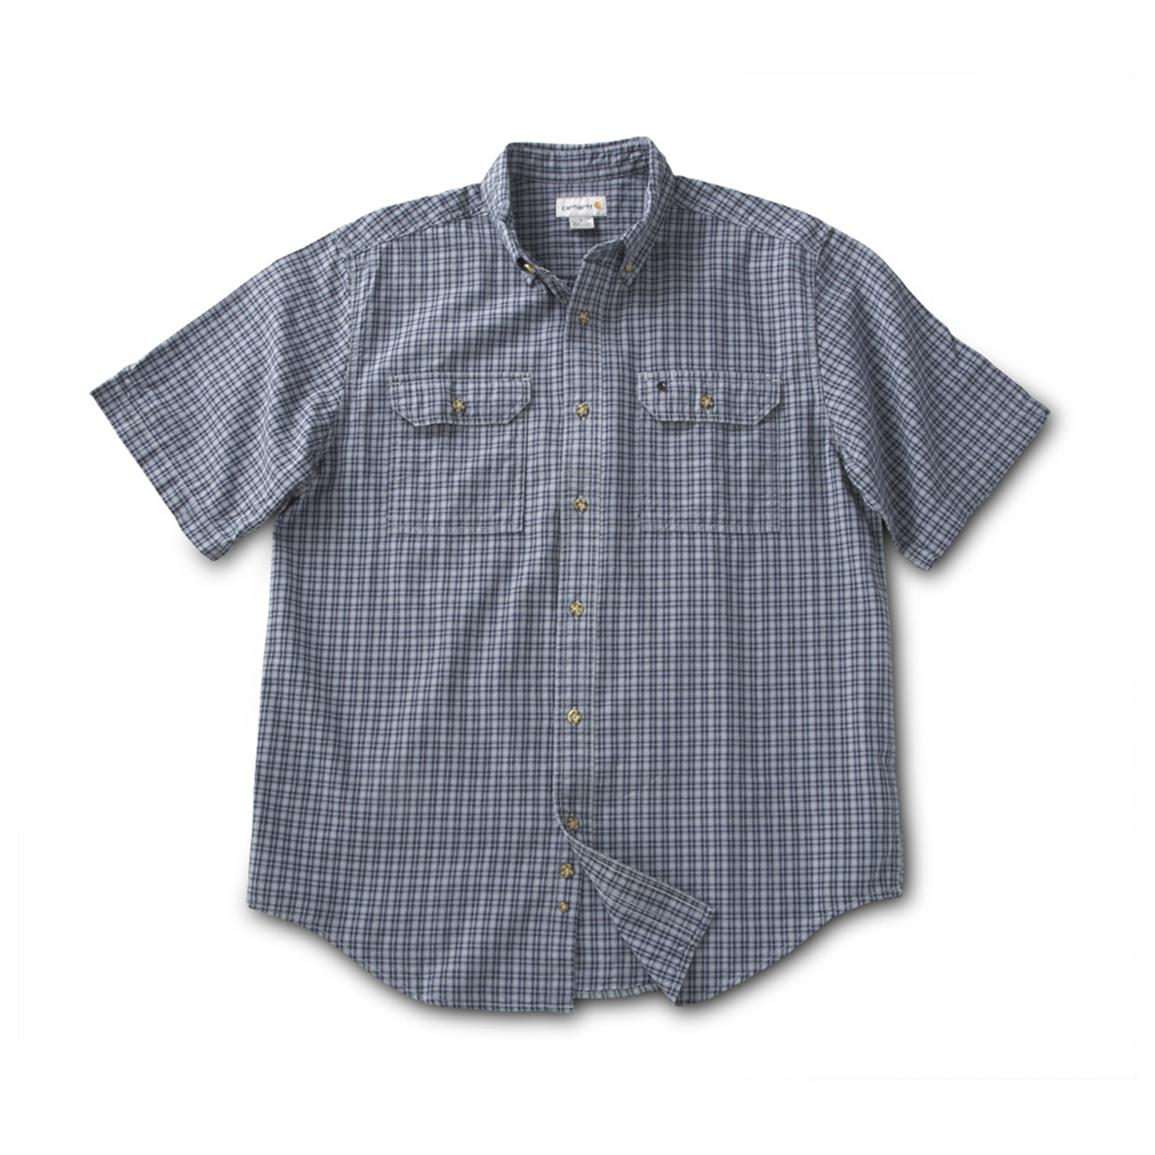 Carhartt Fort Plaid Short-sleeve Shirt, Blue